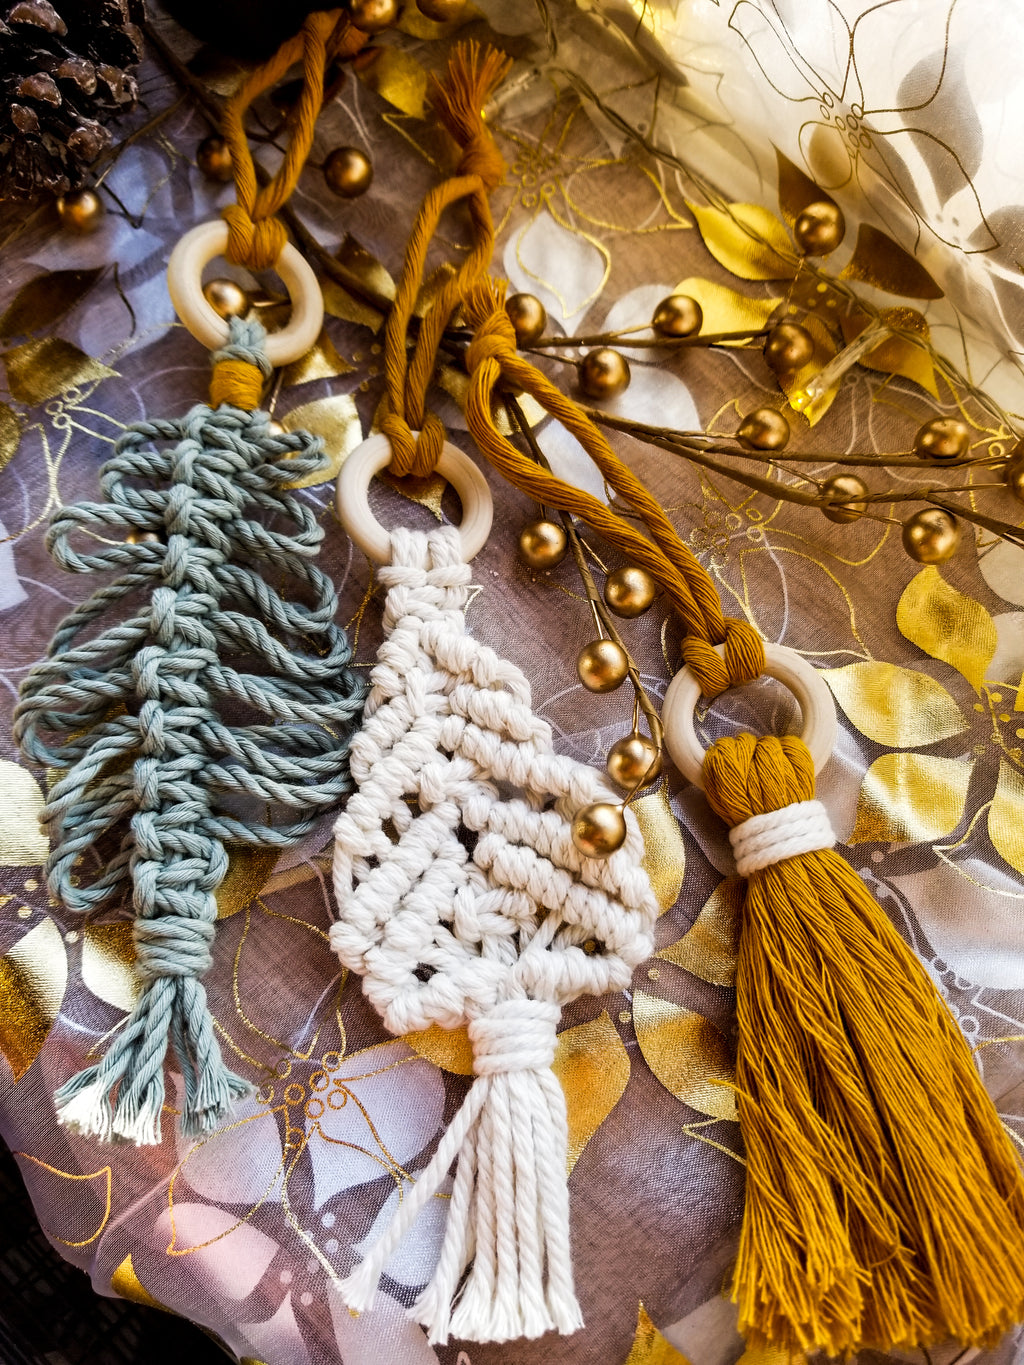 Macramé Tree Ornaments